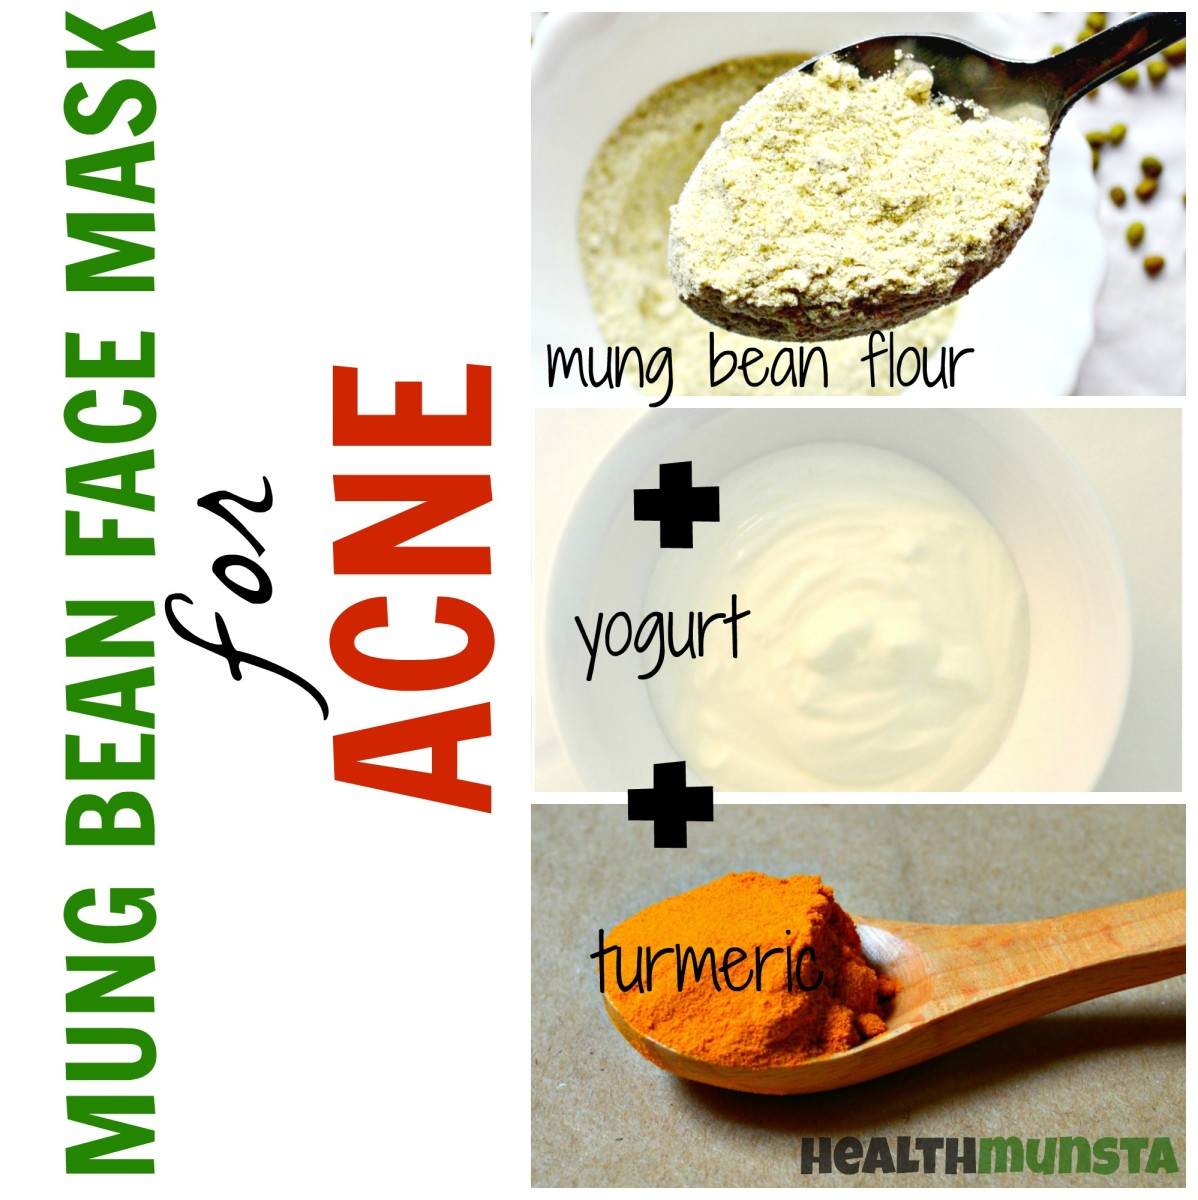 Top 3 Mung Bean Face Mask Recipes for Clear Skin